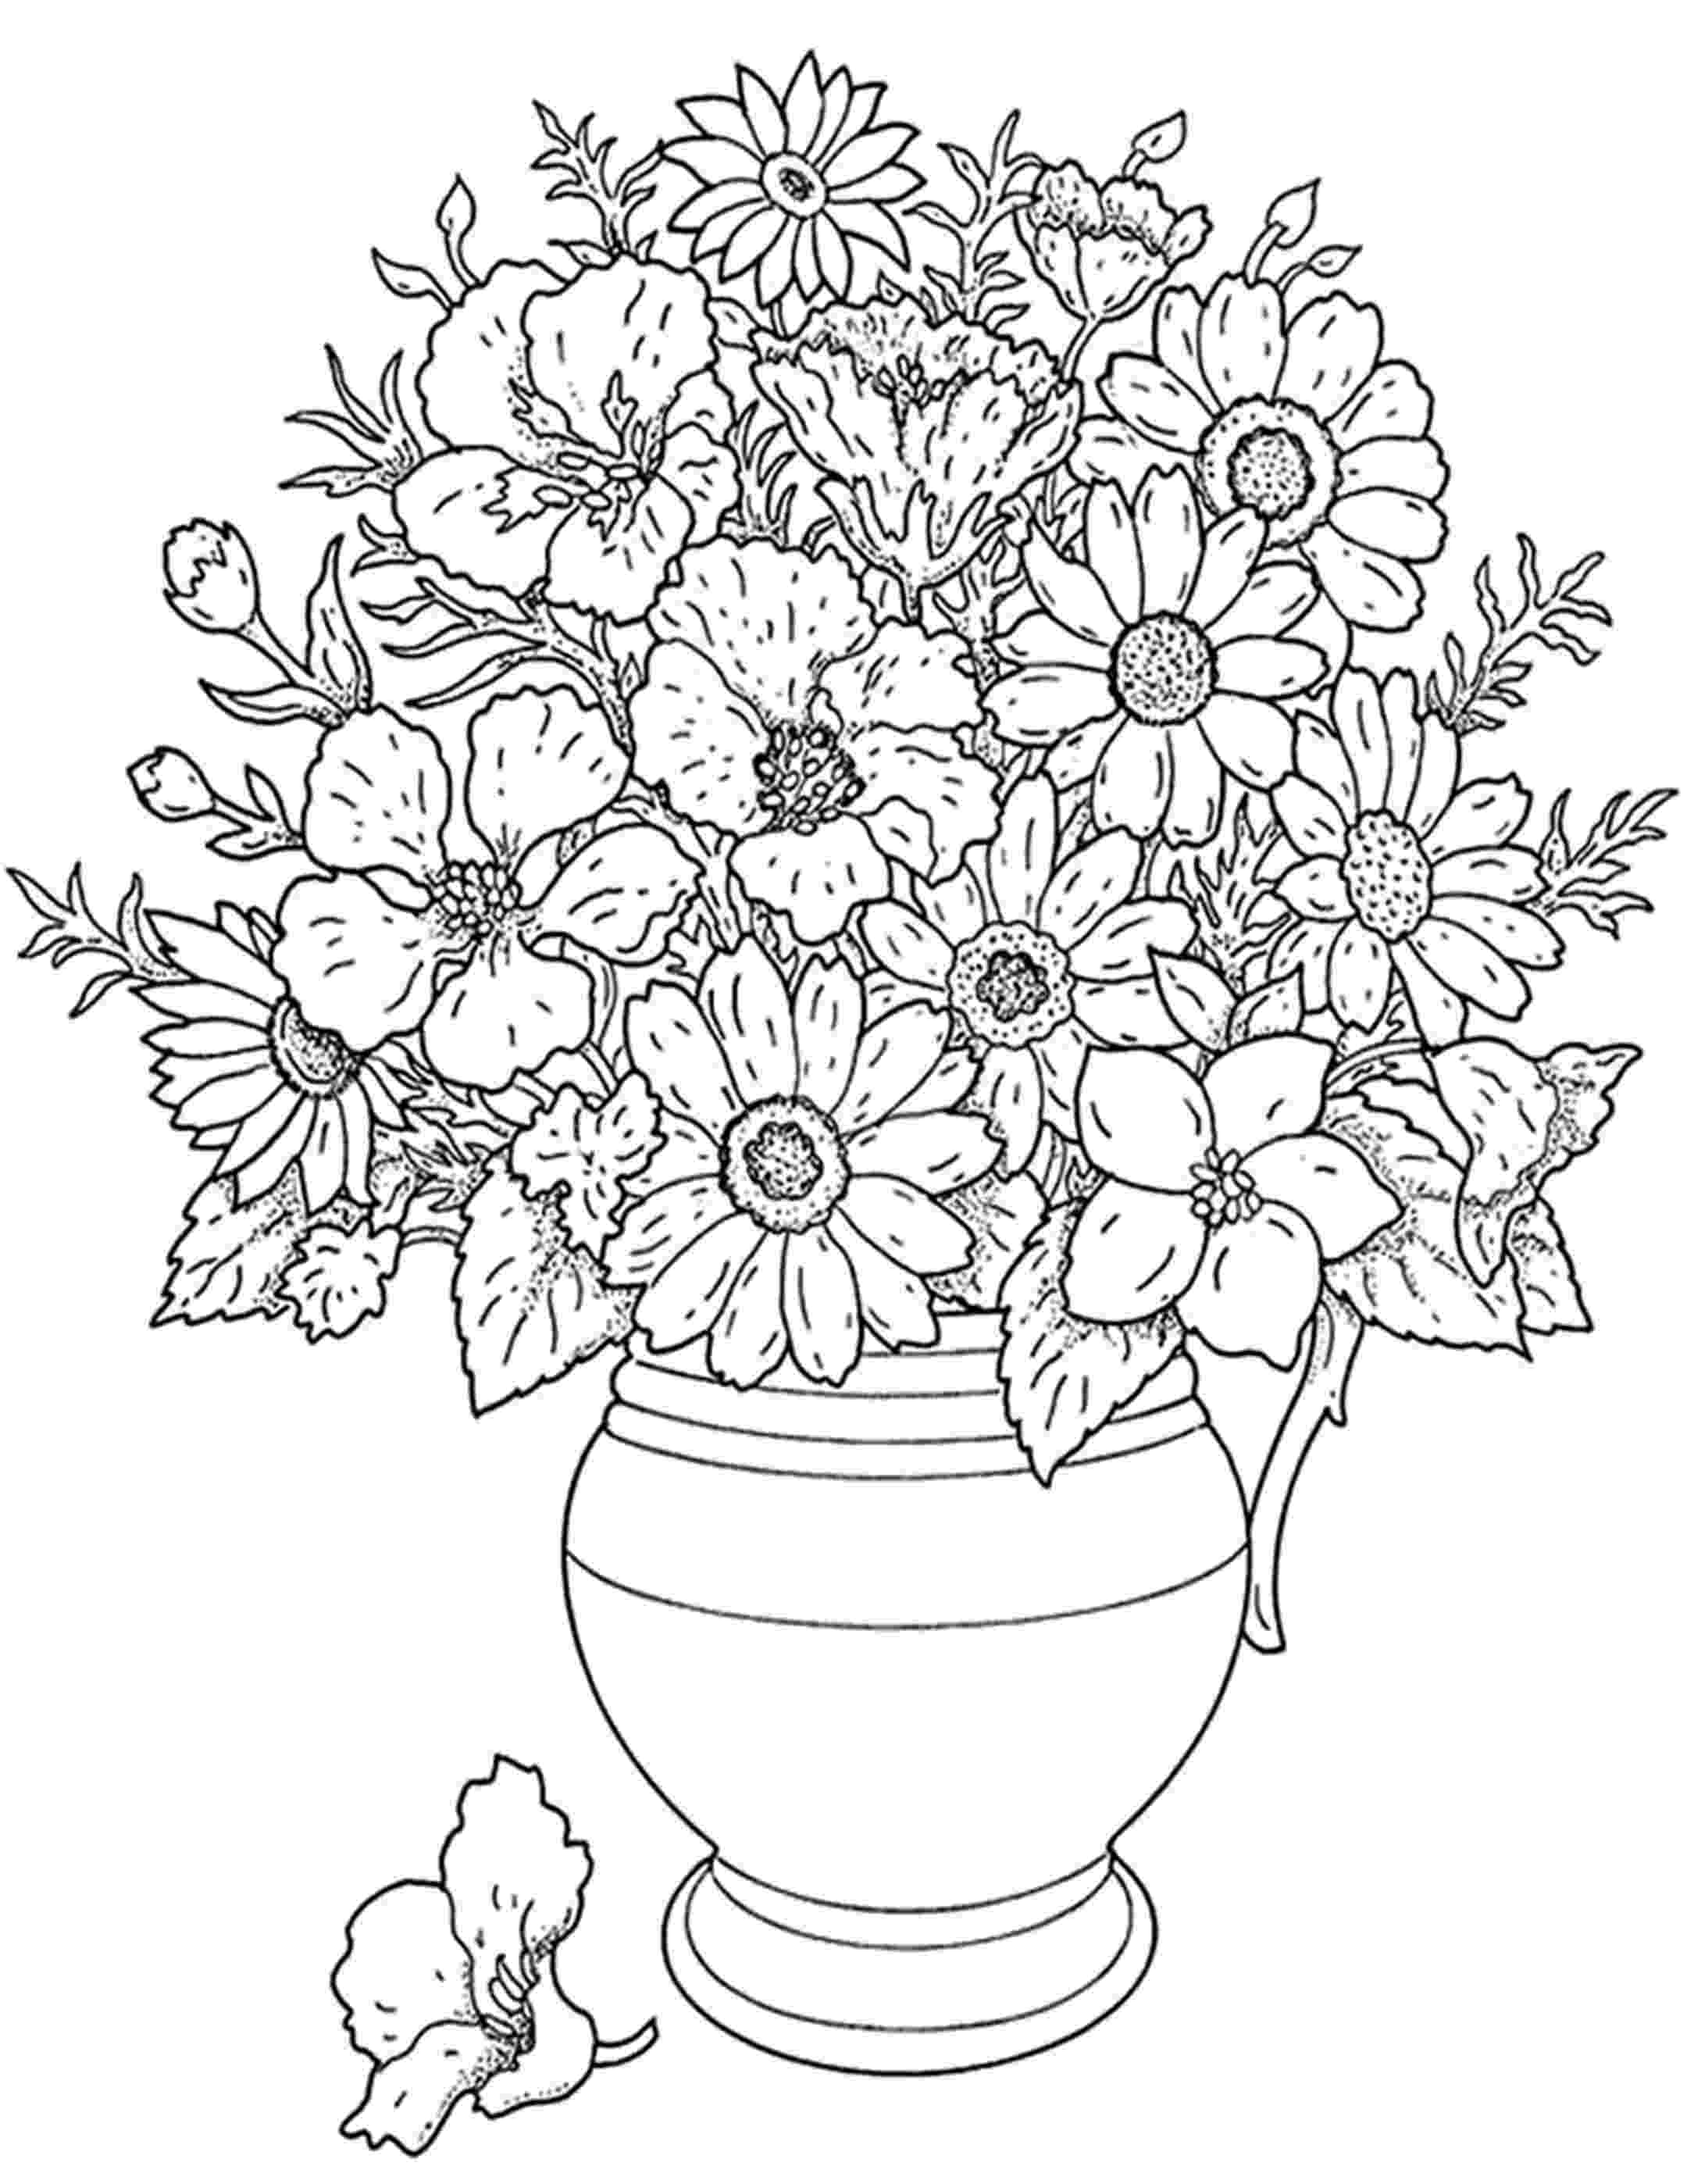 free printable flowers to color free printable flower coloring pages for kids cool2bkids flowers free printable to color